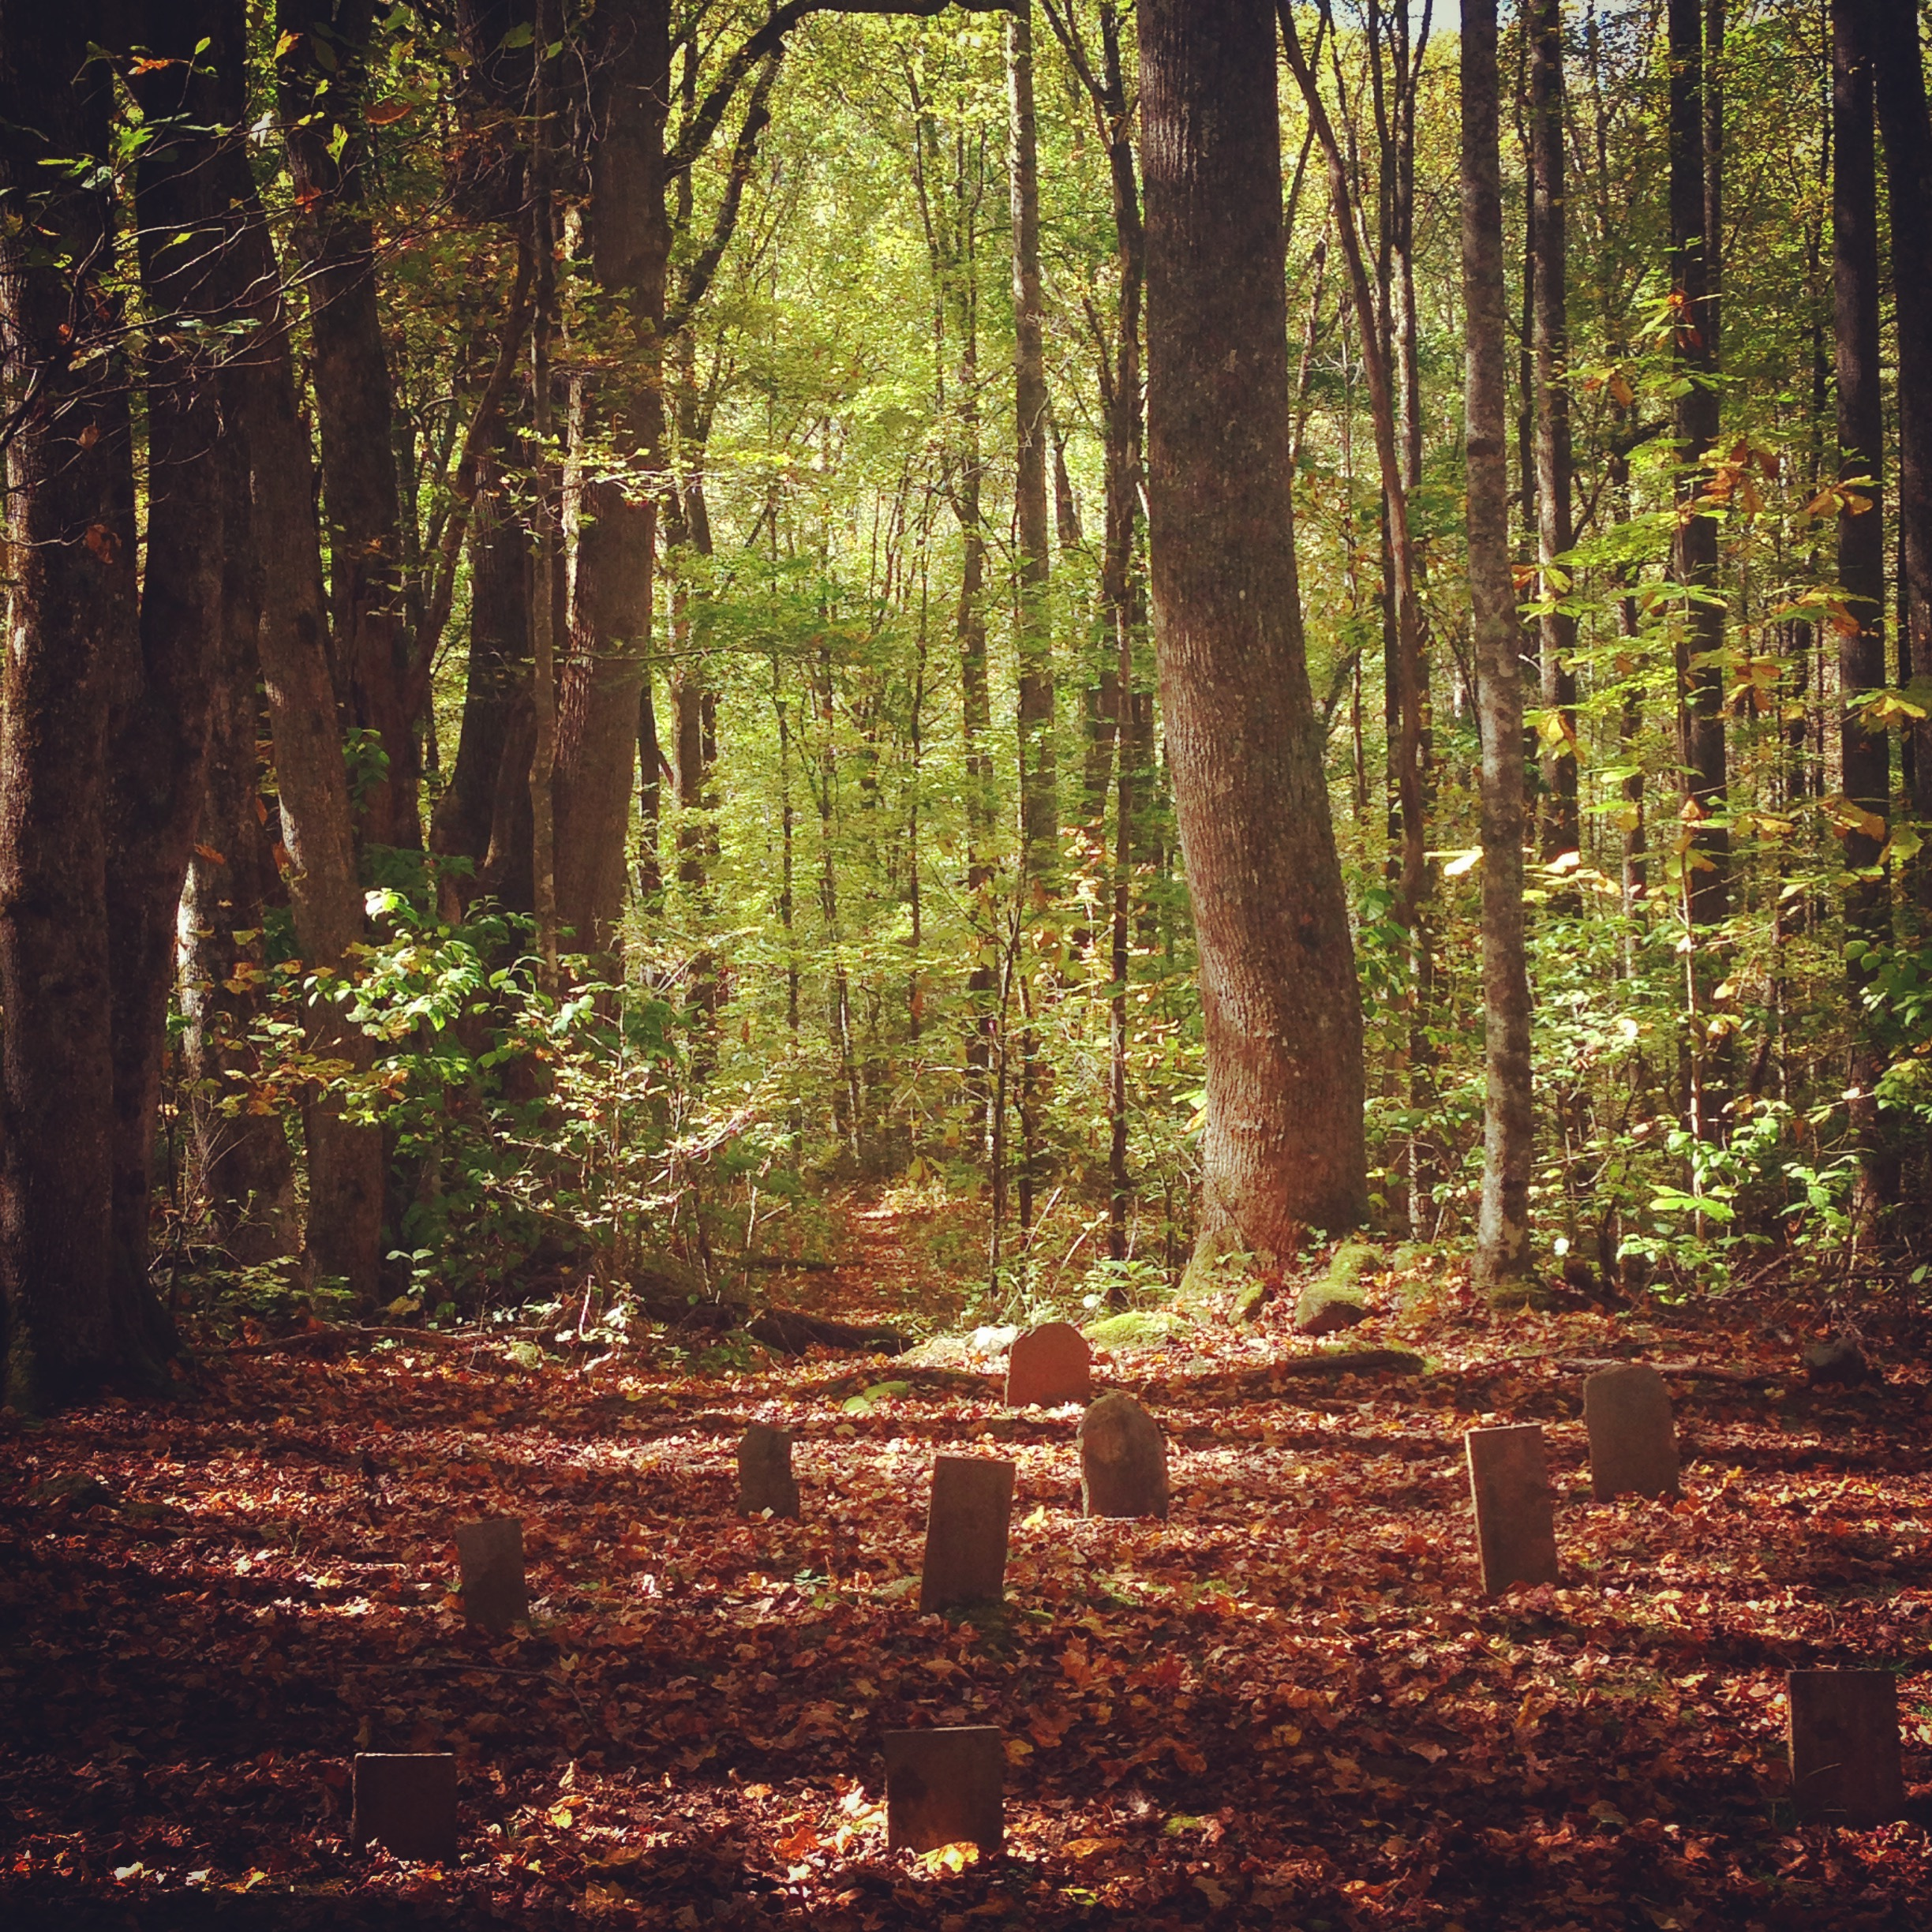 My great great grandmother's cemetery in Great Smoky Mountains National Park.